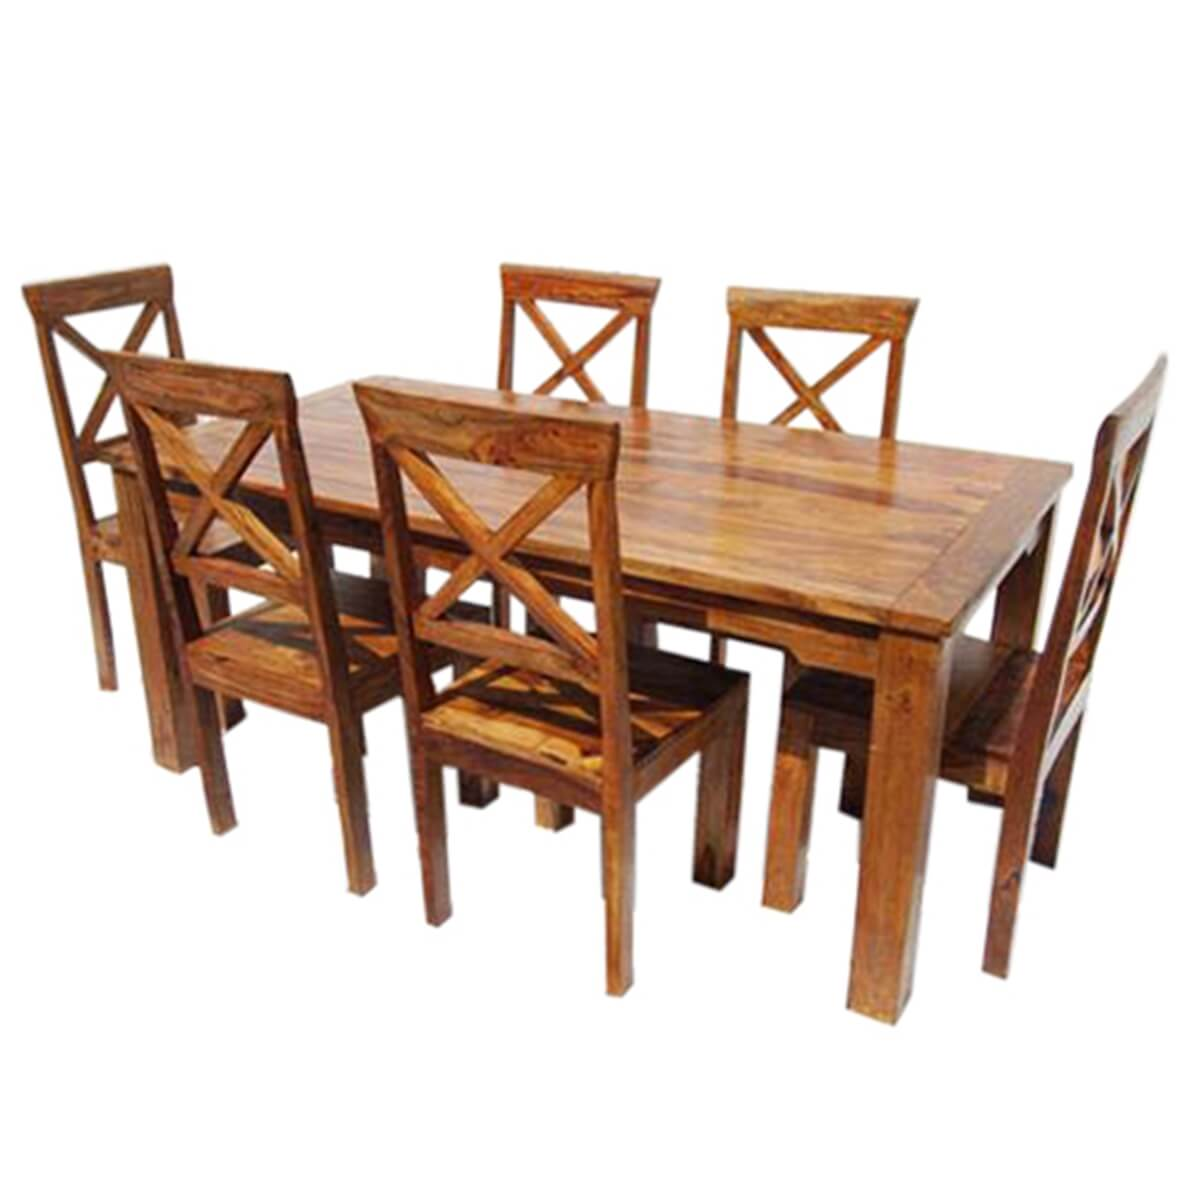 rustic solid wood oklahoma dining table chair set. Black Bedroom Furniture Sets. Home Design Ideas